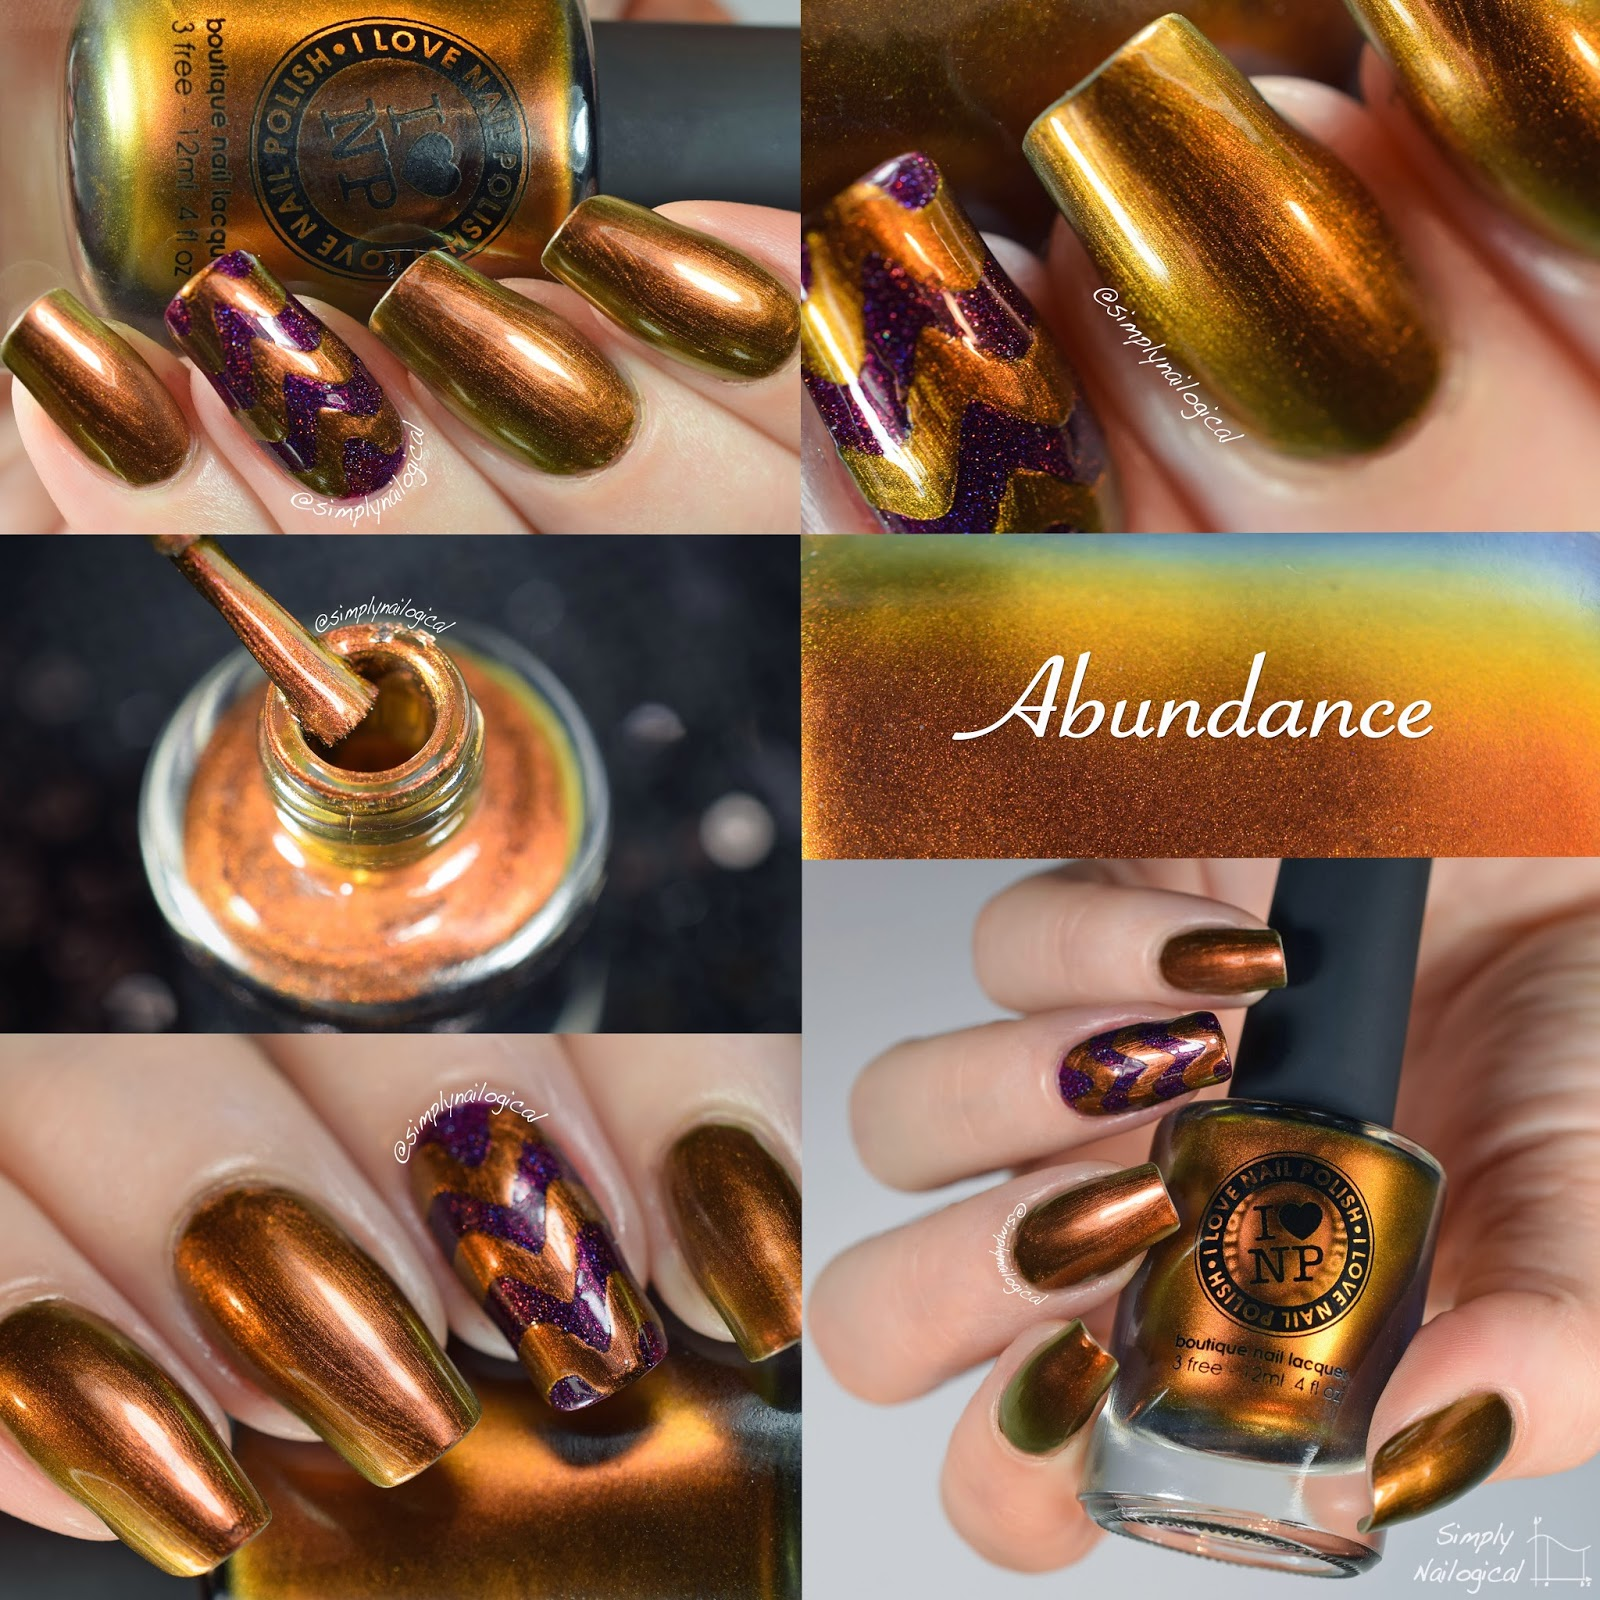 Abundance - ILNP Fall 2014 collection swatch